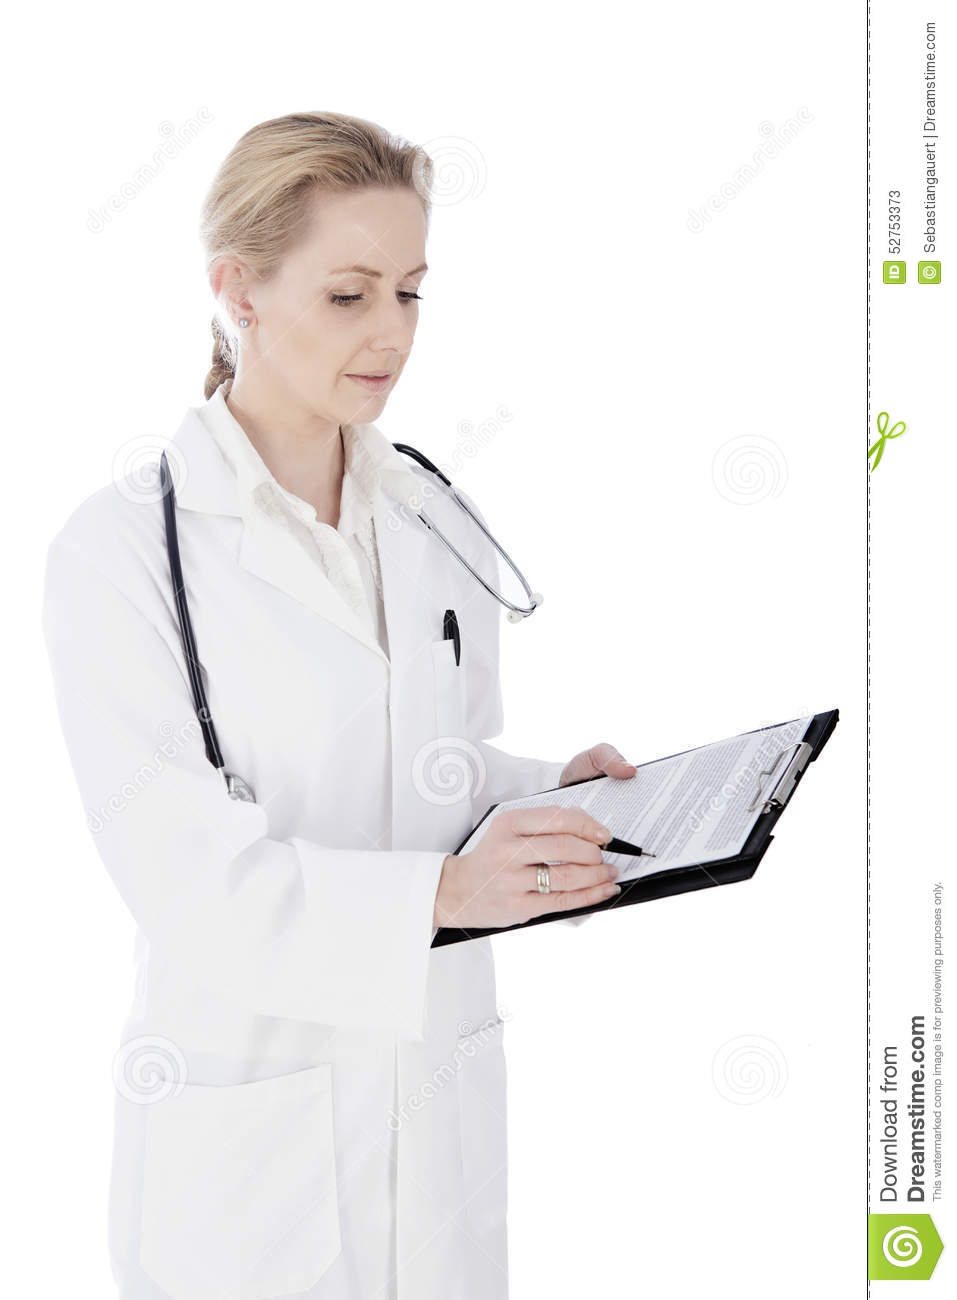 diagnosis of an infected patient essay essay Save your essays here so you can locate them quickly topics in paper  people can get this disease three ways: having intercourse with an infected person, sharing.